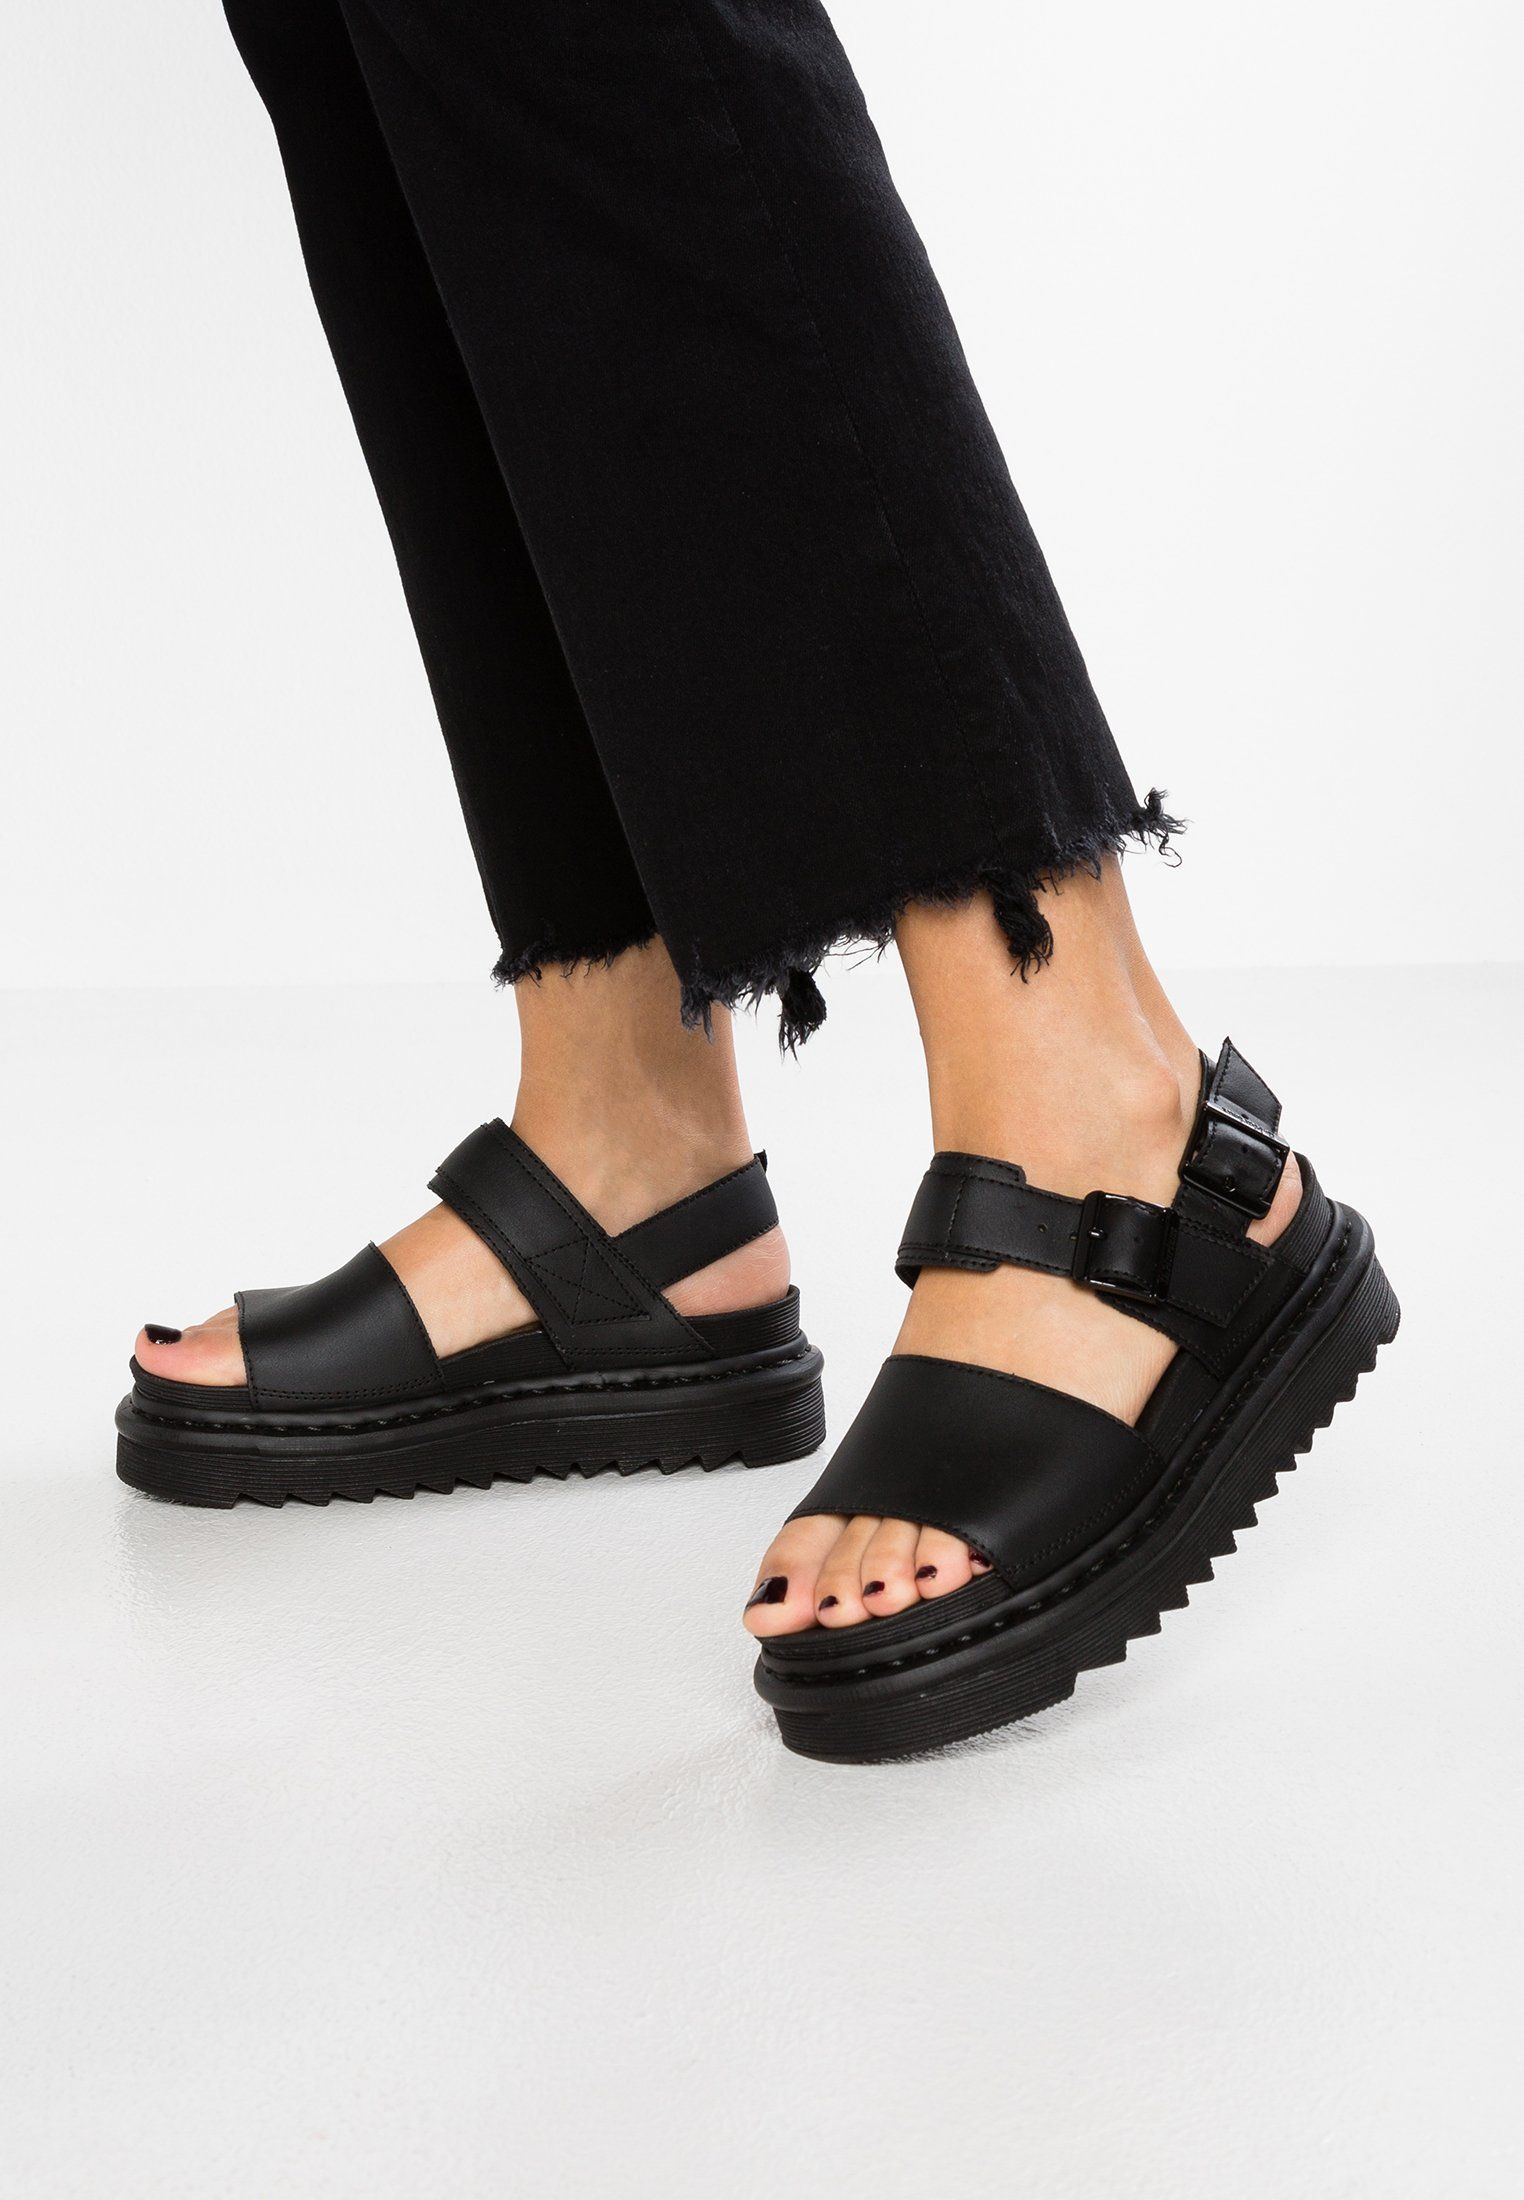 New Doc's Sandals: Dr. Martens Voss leather sandals at